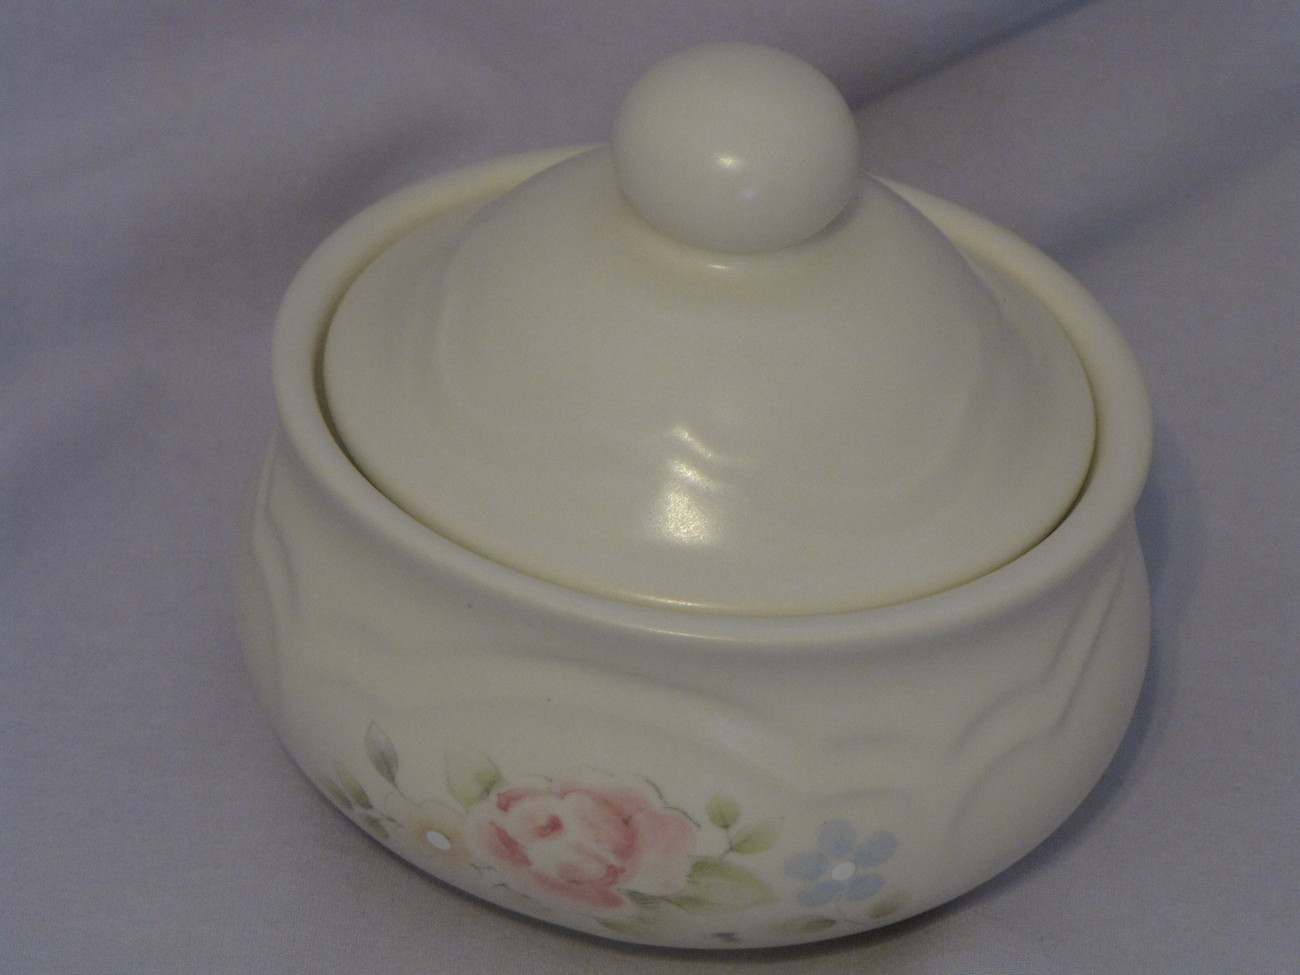 Pfaltzgraff tea rose sugar bowl